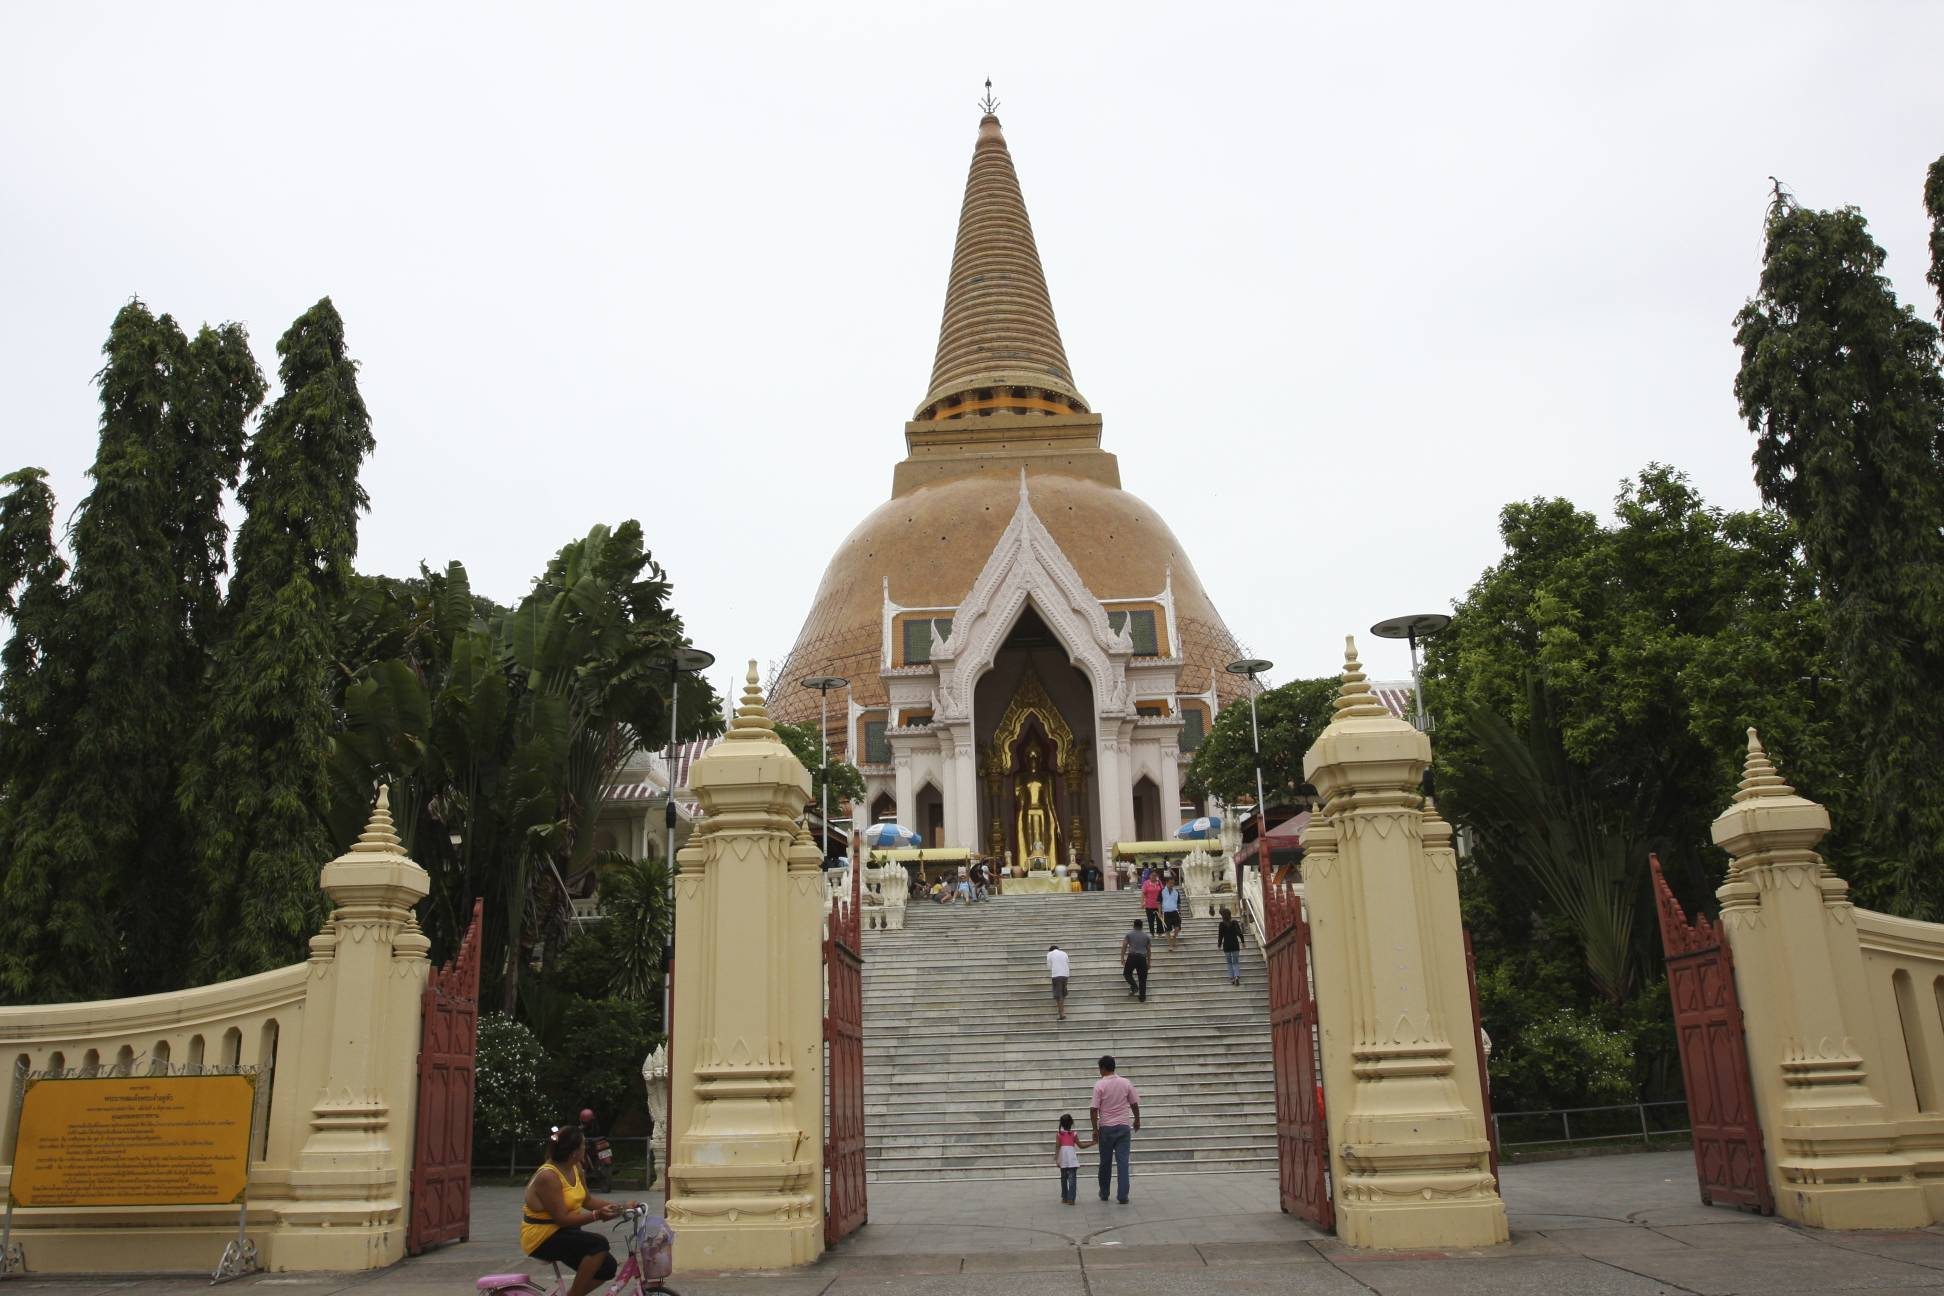 Phra Pathom Chedi - Temple in Bangkok - Thousand Wonders